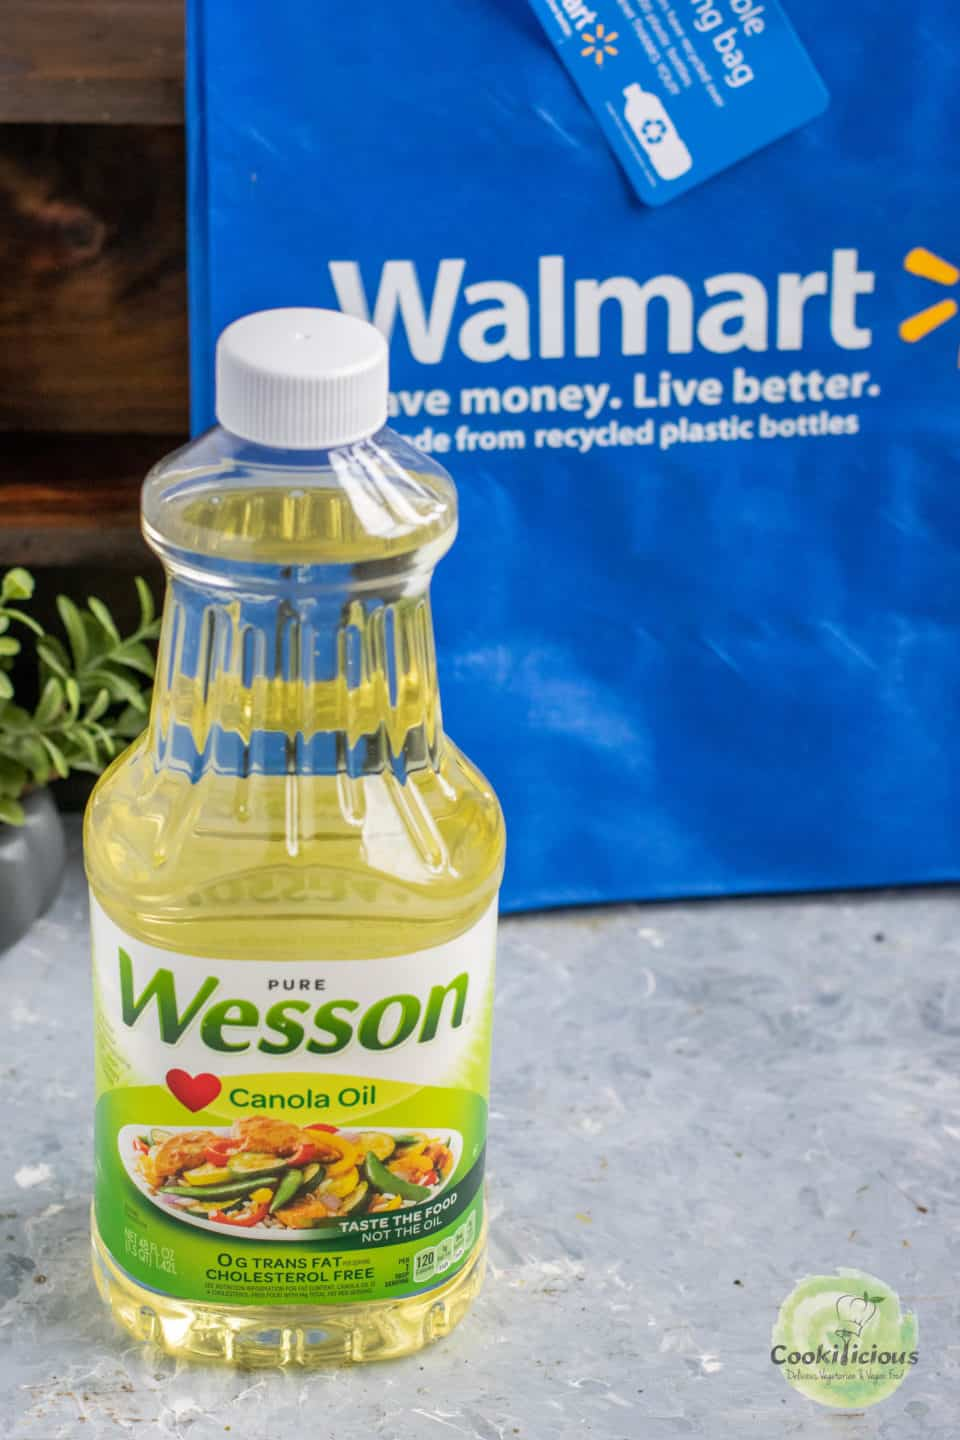 image of Wesson Canola Oil in a bottle with a Walmart bag behind it